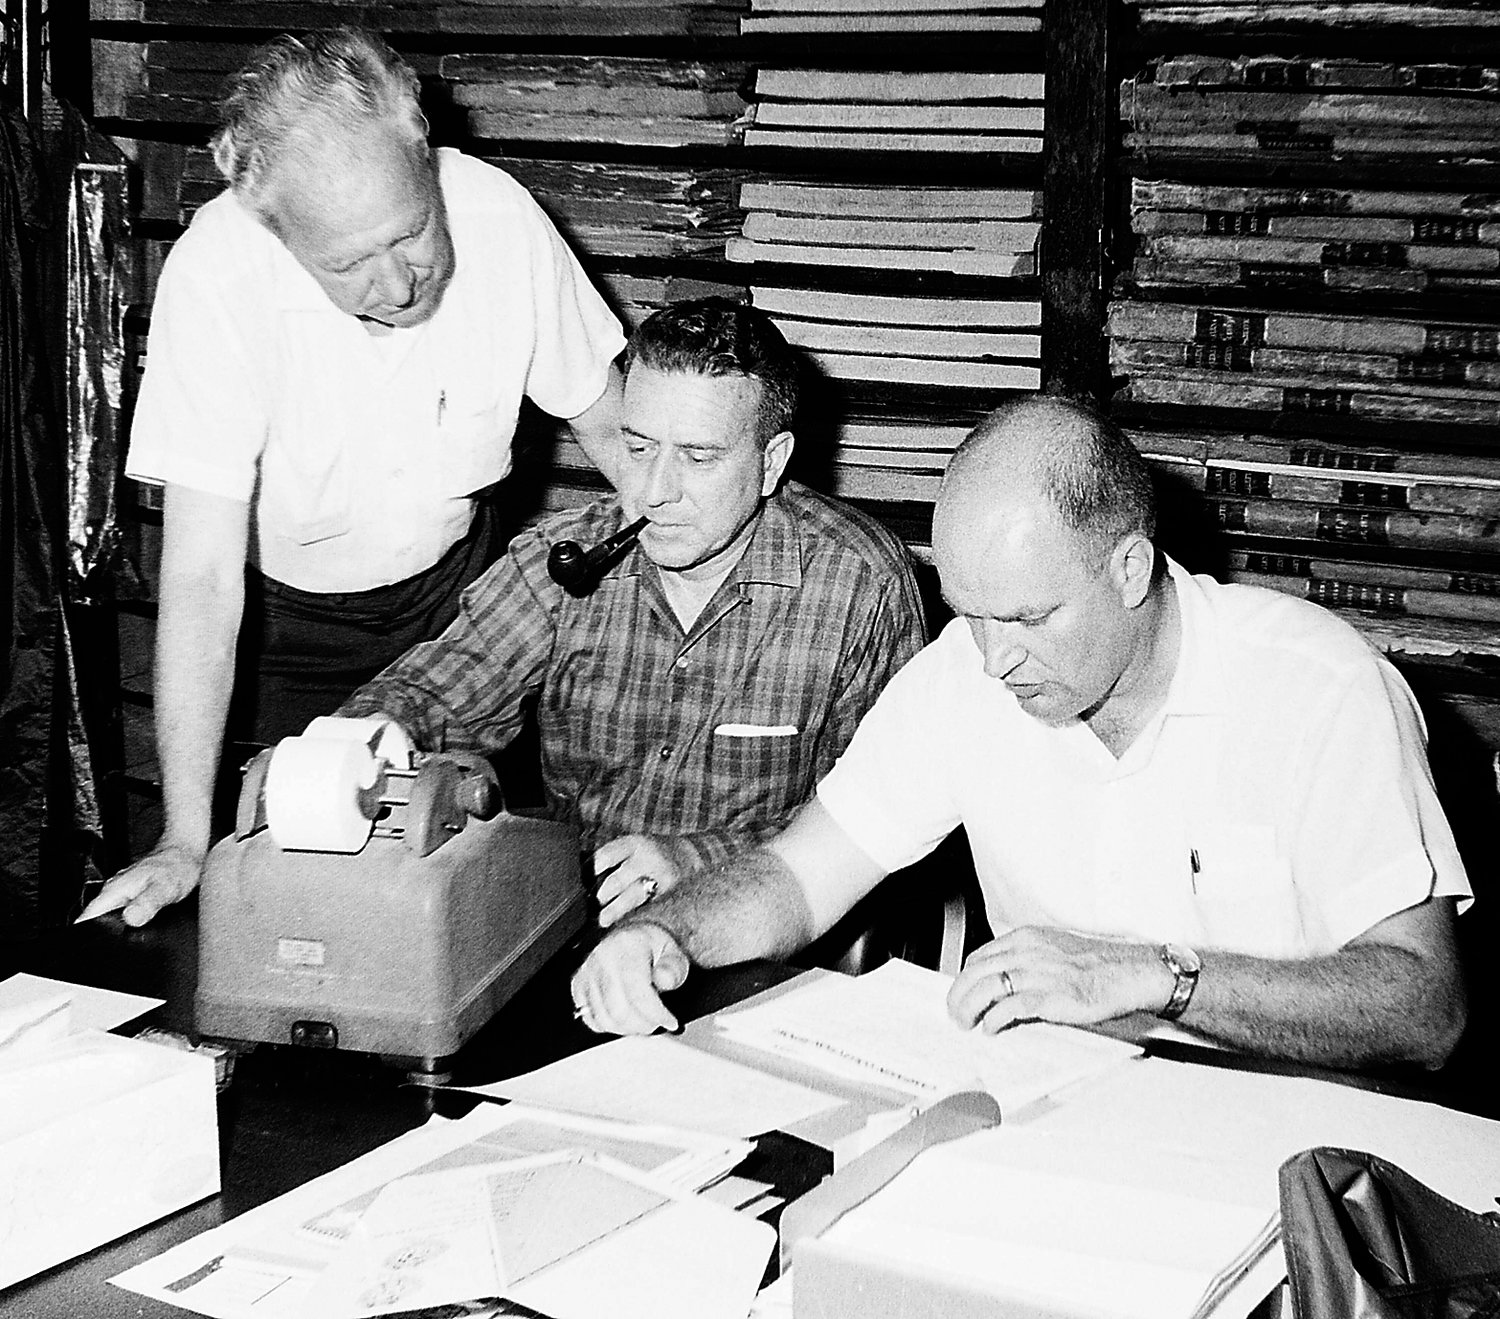 This Gazette throwback appeared in the May 28, 1964 edition.